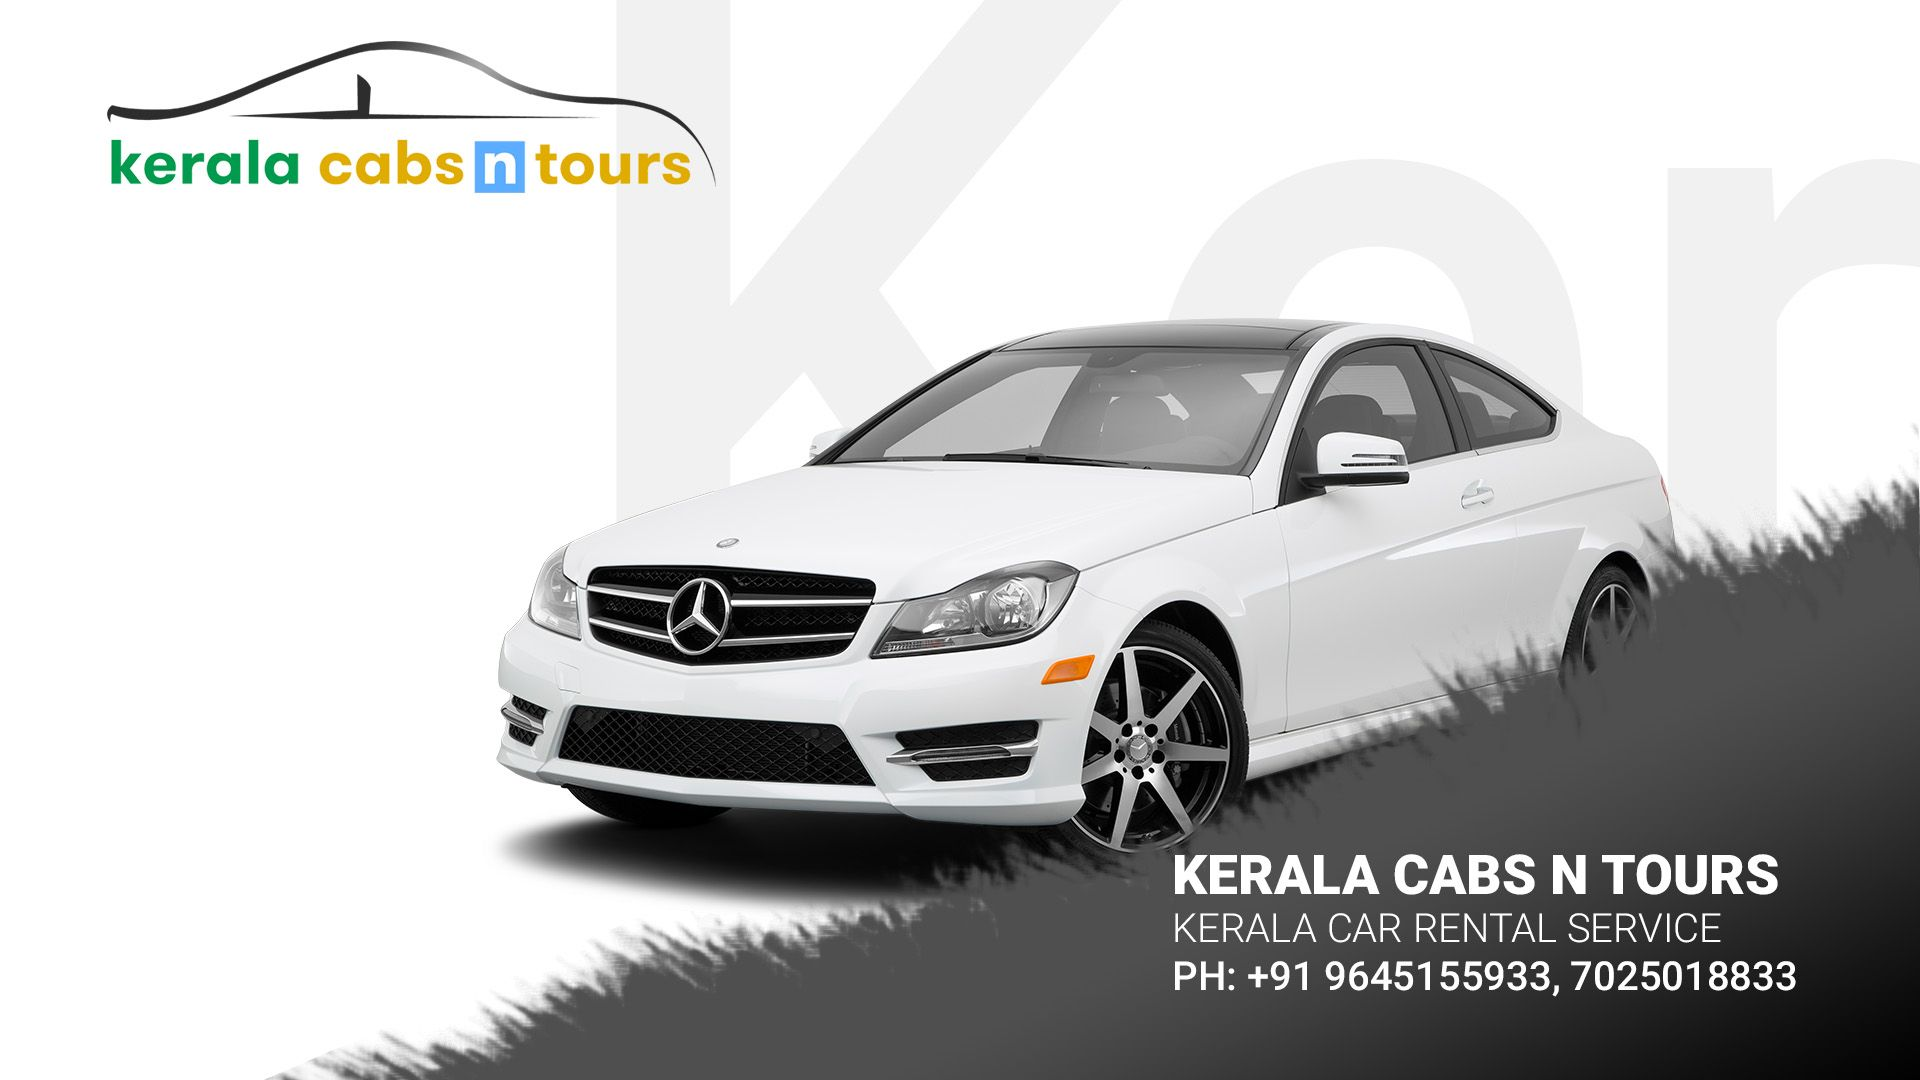 Kerala Cabs N Tours provides cars from luxury class to